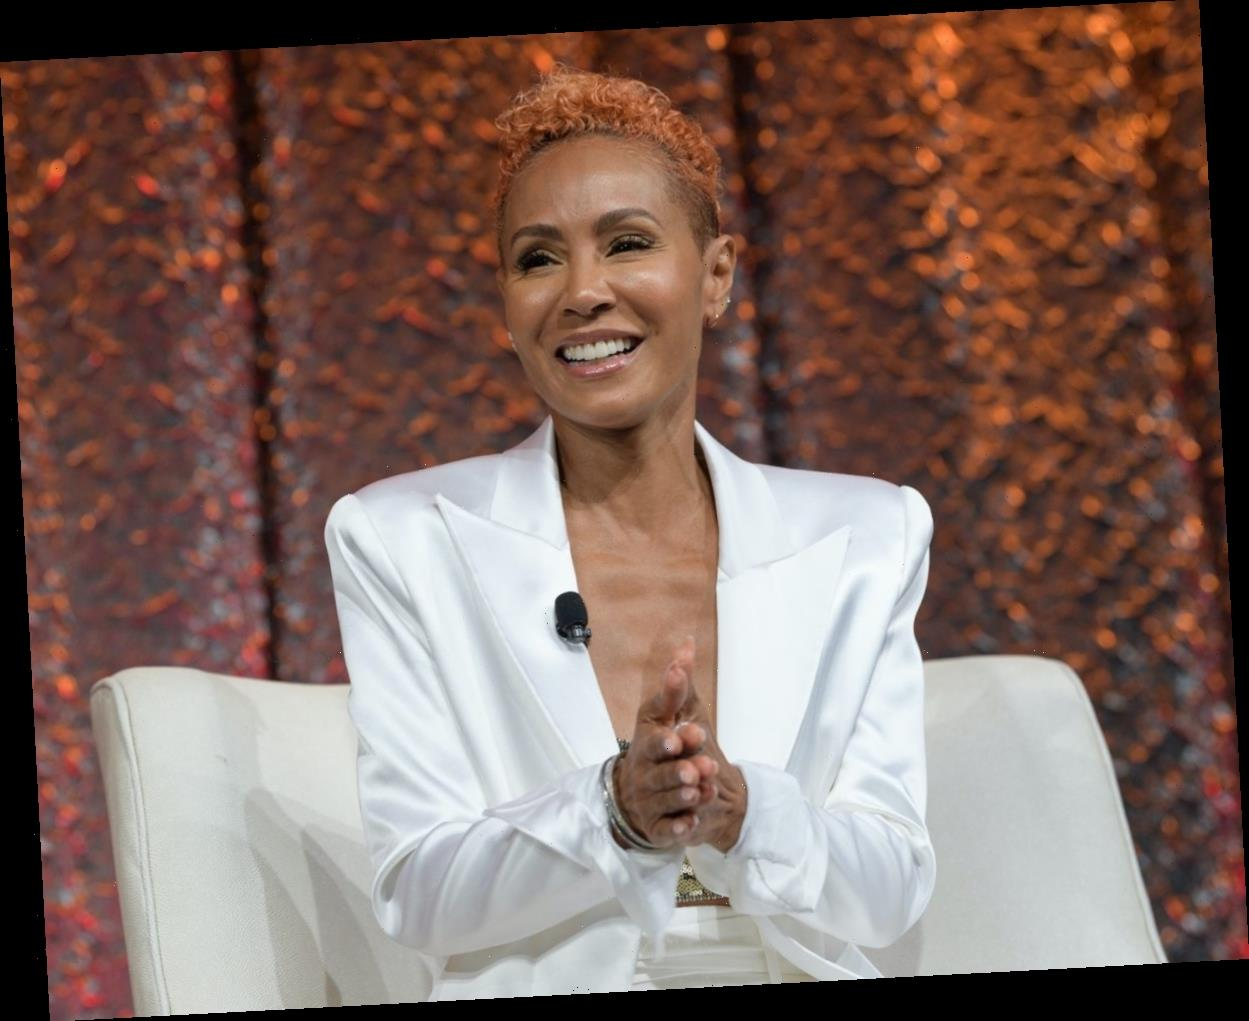 Jada Pinkett Smith Admitted Why Kissing Tupac Shakur Was 'The Most Disgusting Kiss'